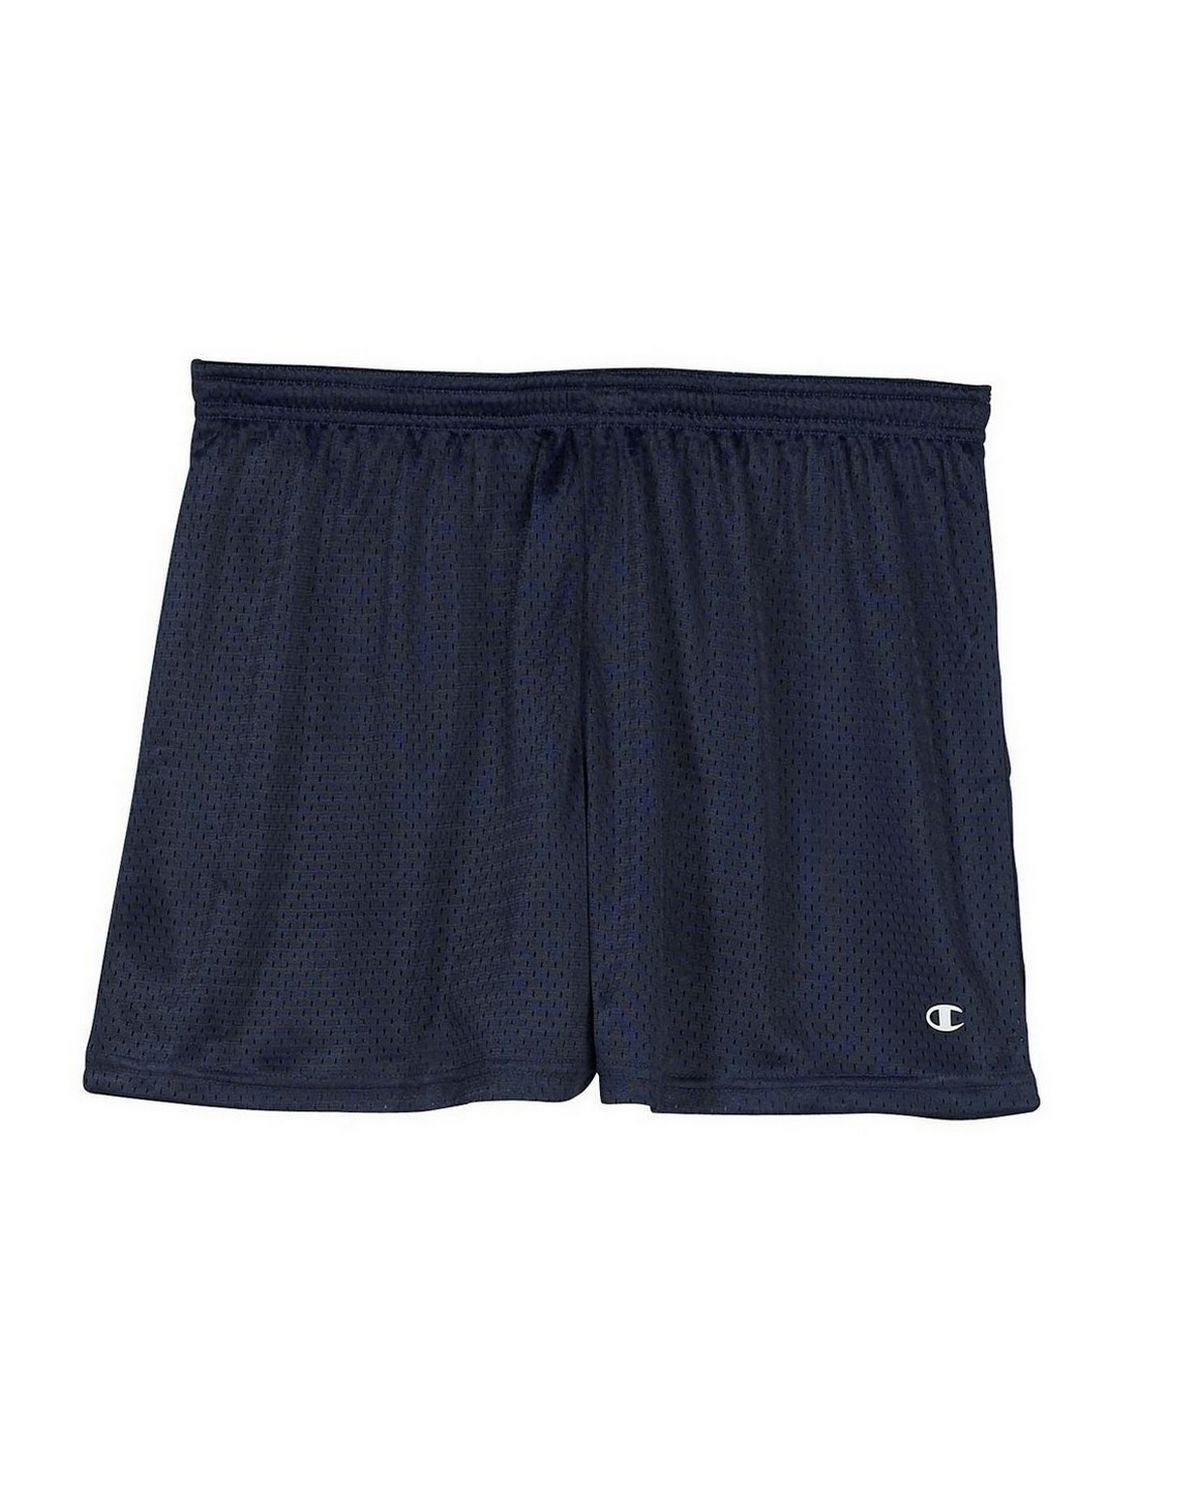 Champion 3393 Active Mesh Shorts - Navy - XL 3393